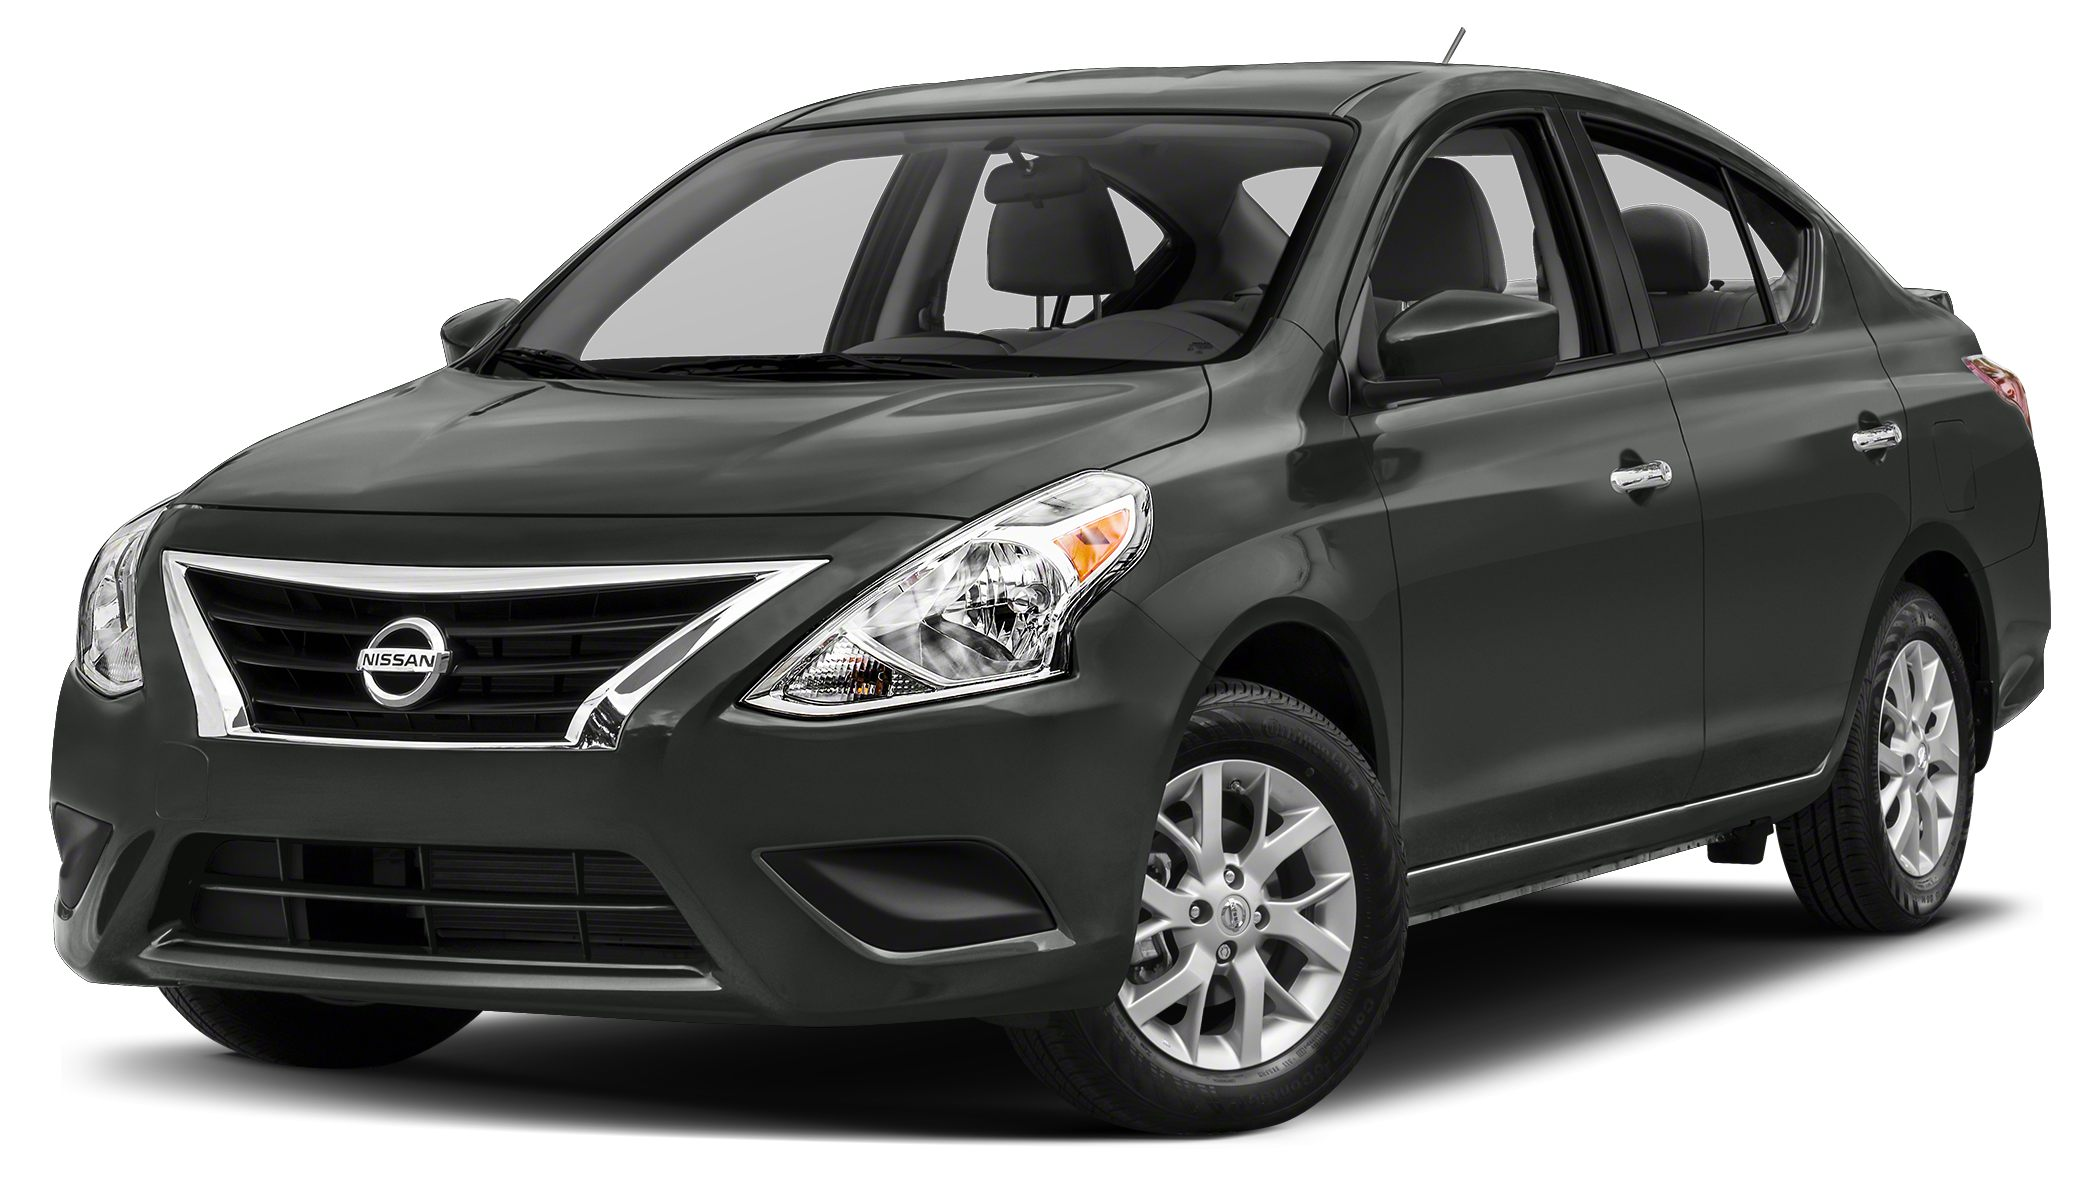 2017 Nissan Versa 16 S Check out this 2017 It comes equipped with all the standard amenities for